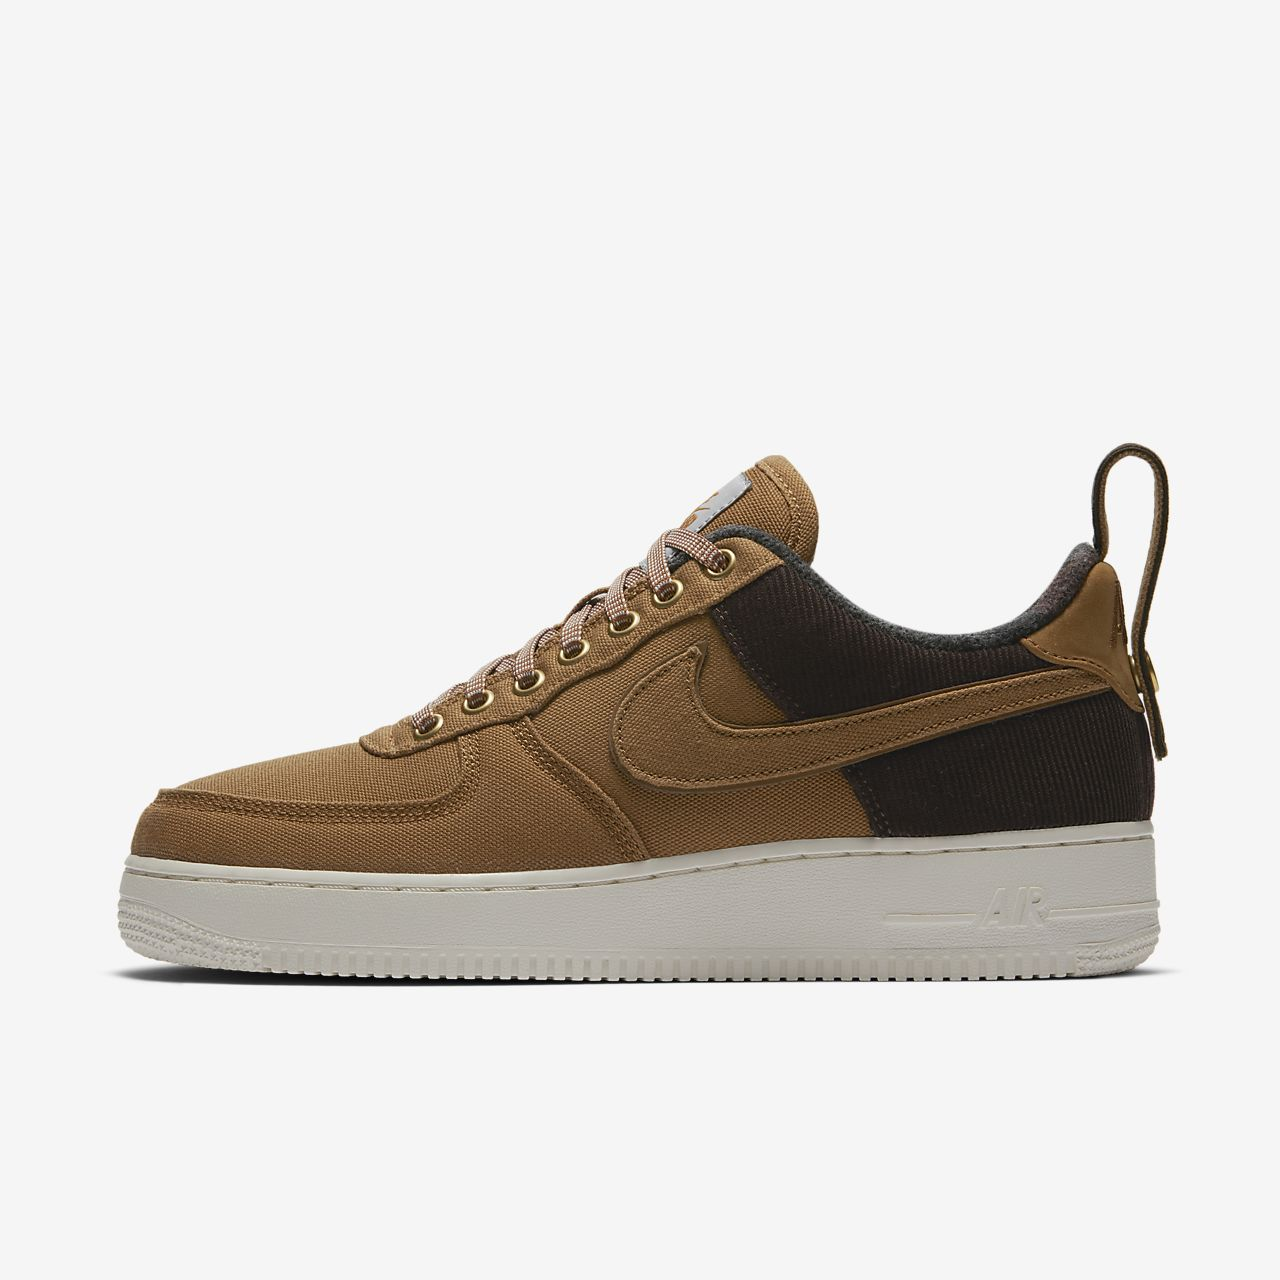 sports shoes c5cb5 7d2f7 ... Chaussure Nike x Carhartt WIP Air Force 1 pour Homme